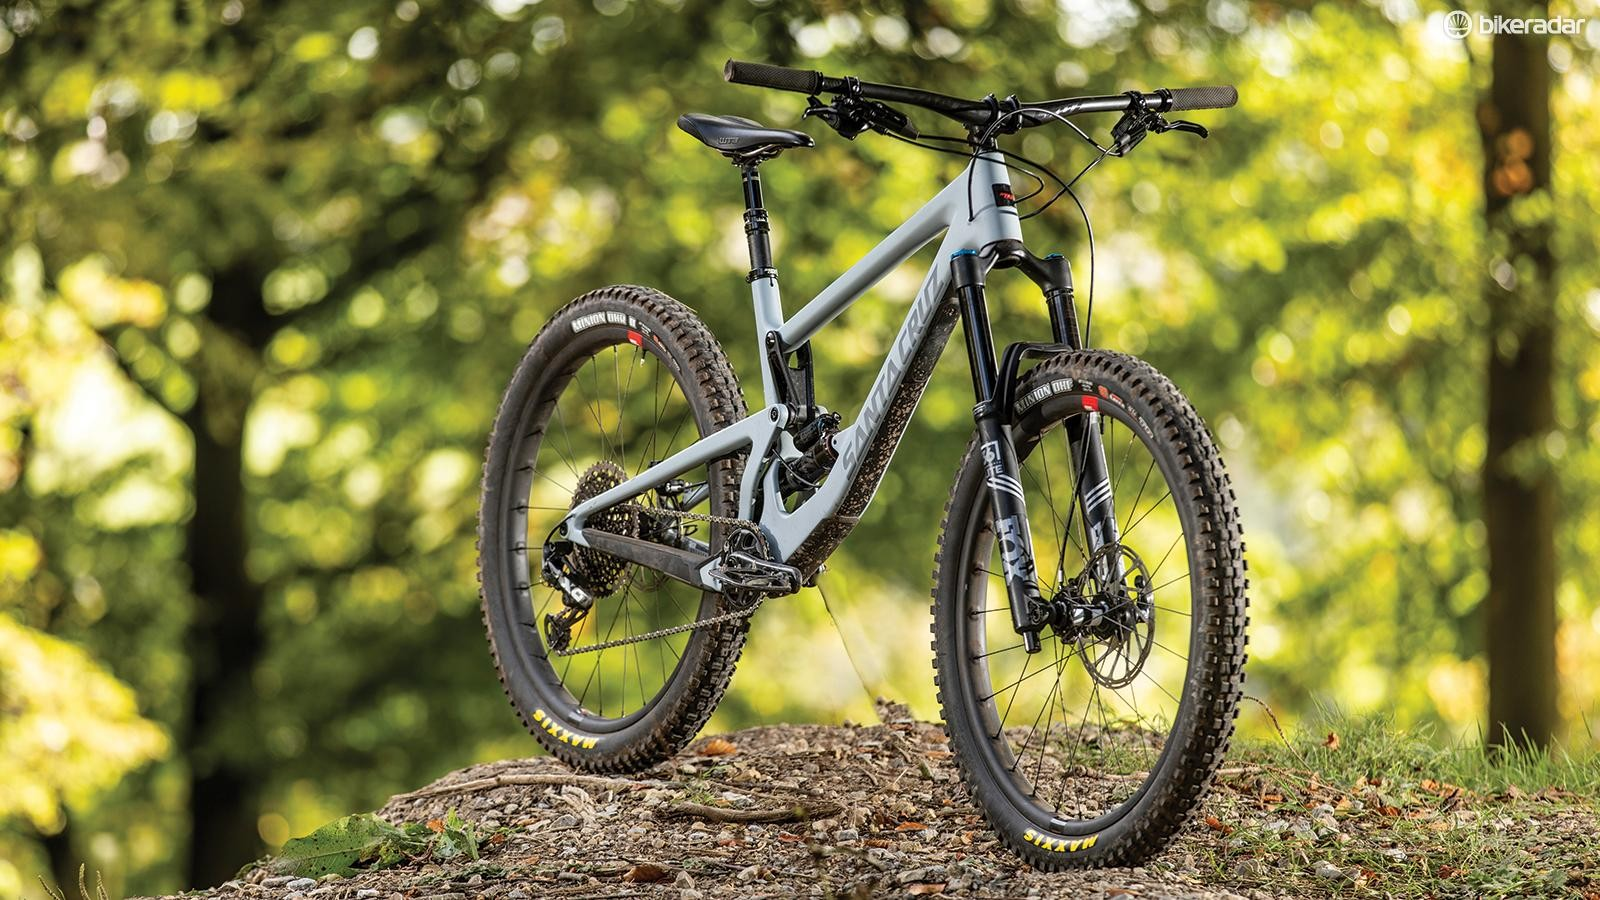 The transmission is full SRAM X01 and the brakes are our favourite SRAM Code RSCs